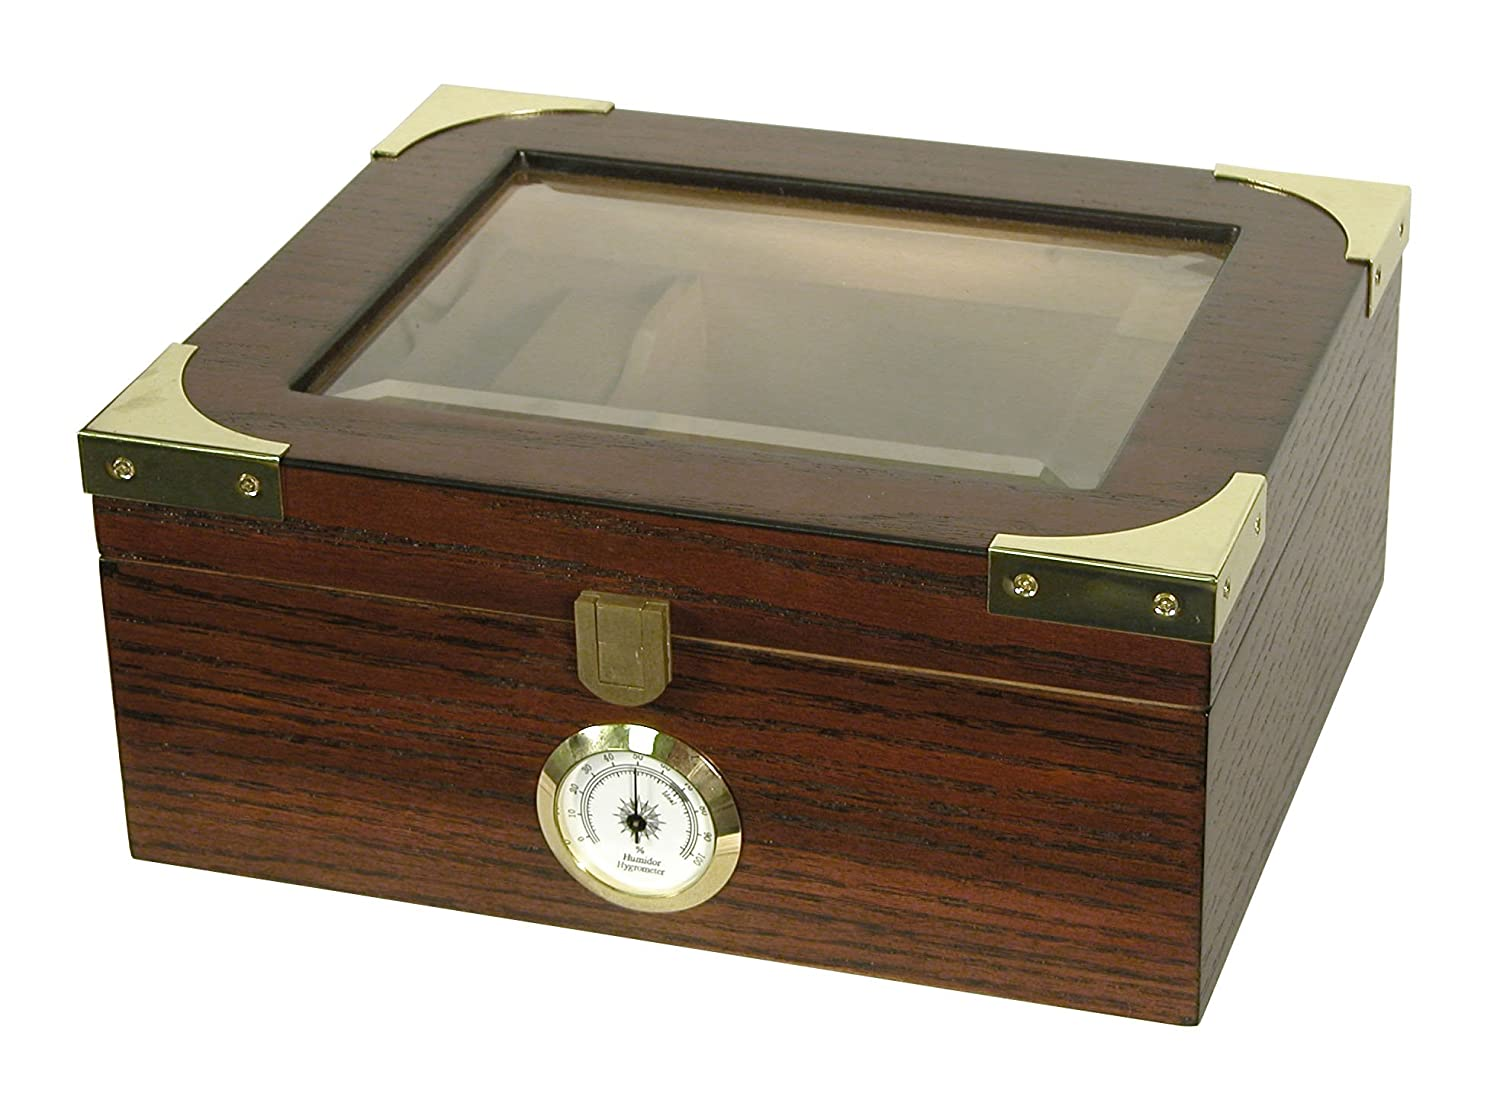 Desktop Humidor, Capri Elegant, Tempered Glasstop, Cedar Spanish Divider, Brass Ring Glass Hygrometer, Holds 25 to 50 Cigars, by Quality Importers Quality Importers Trading Co. HUM-25EL